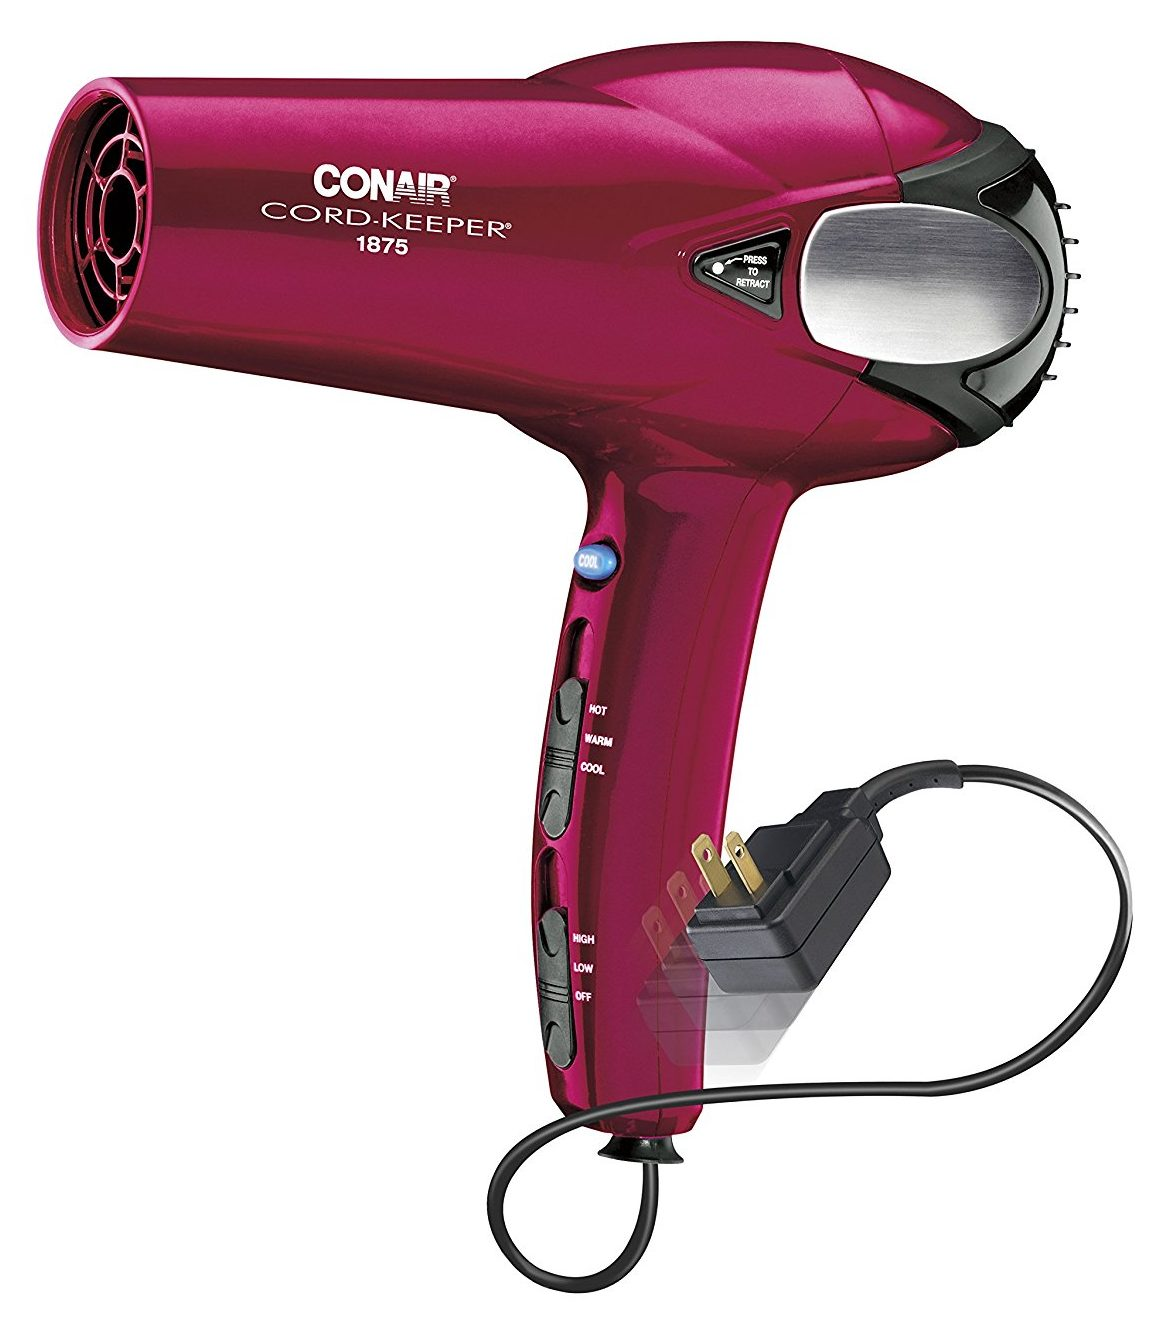 conair you style hair dryer review conair cord keeper hair dryer review 2 in 1 styler 5121